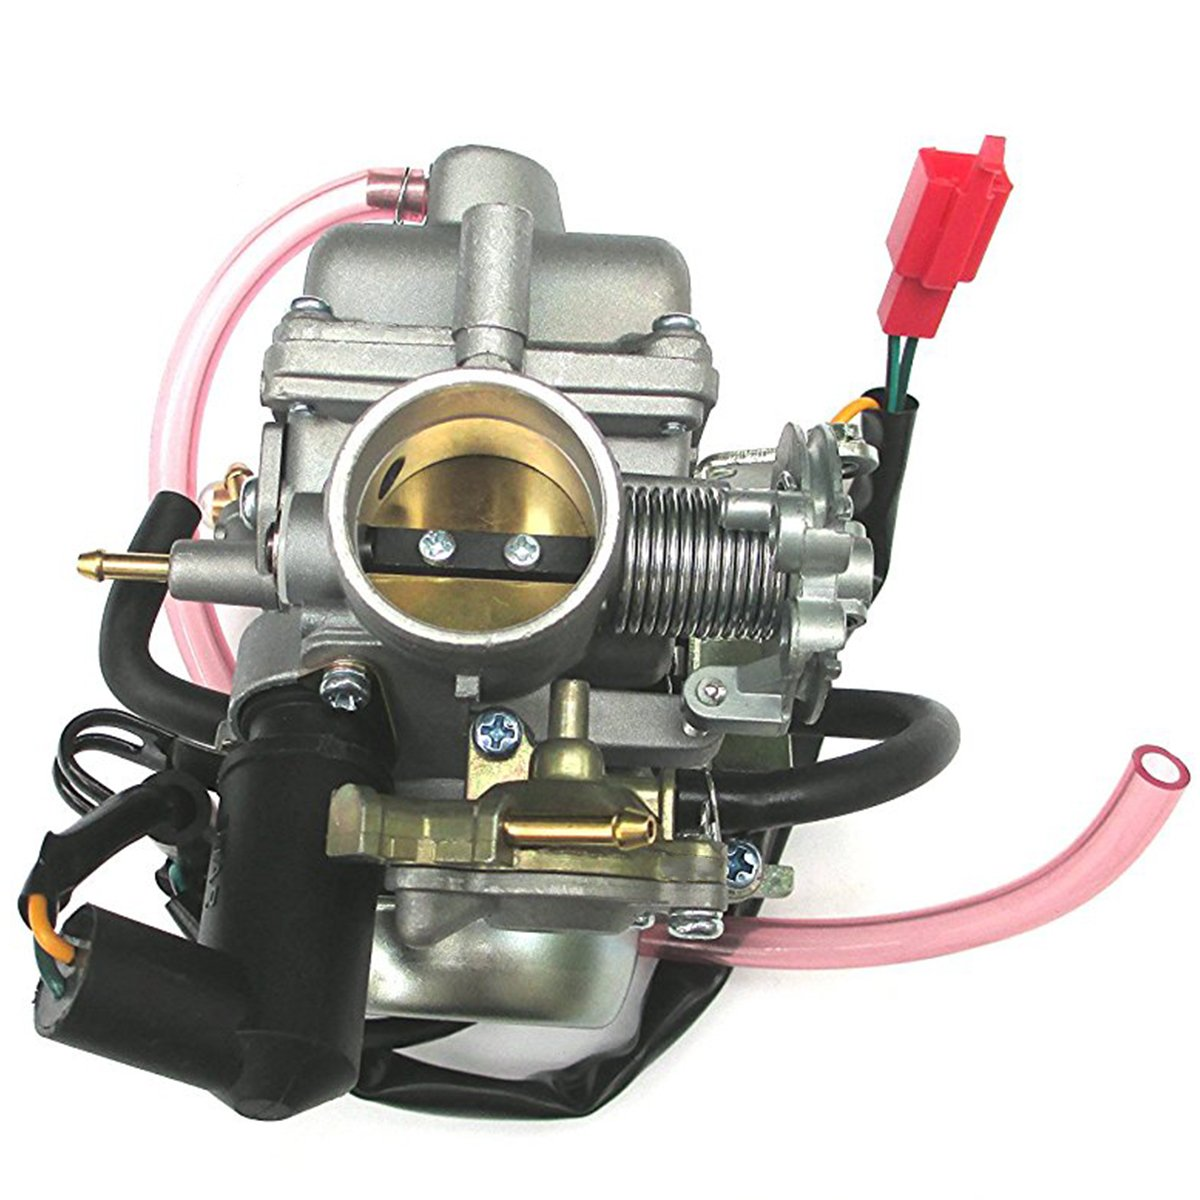 250cc Engine Motor Carburetor fit for Honda Helix CN250 CF250 CH250 China Scooter Moped Atv Go Karts RUIAN HAOCHENG VEHICLE PARTS